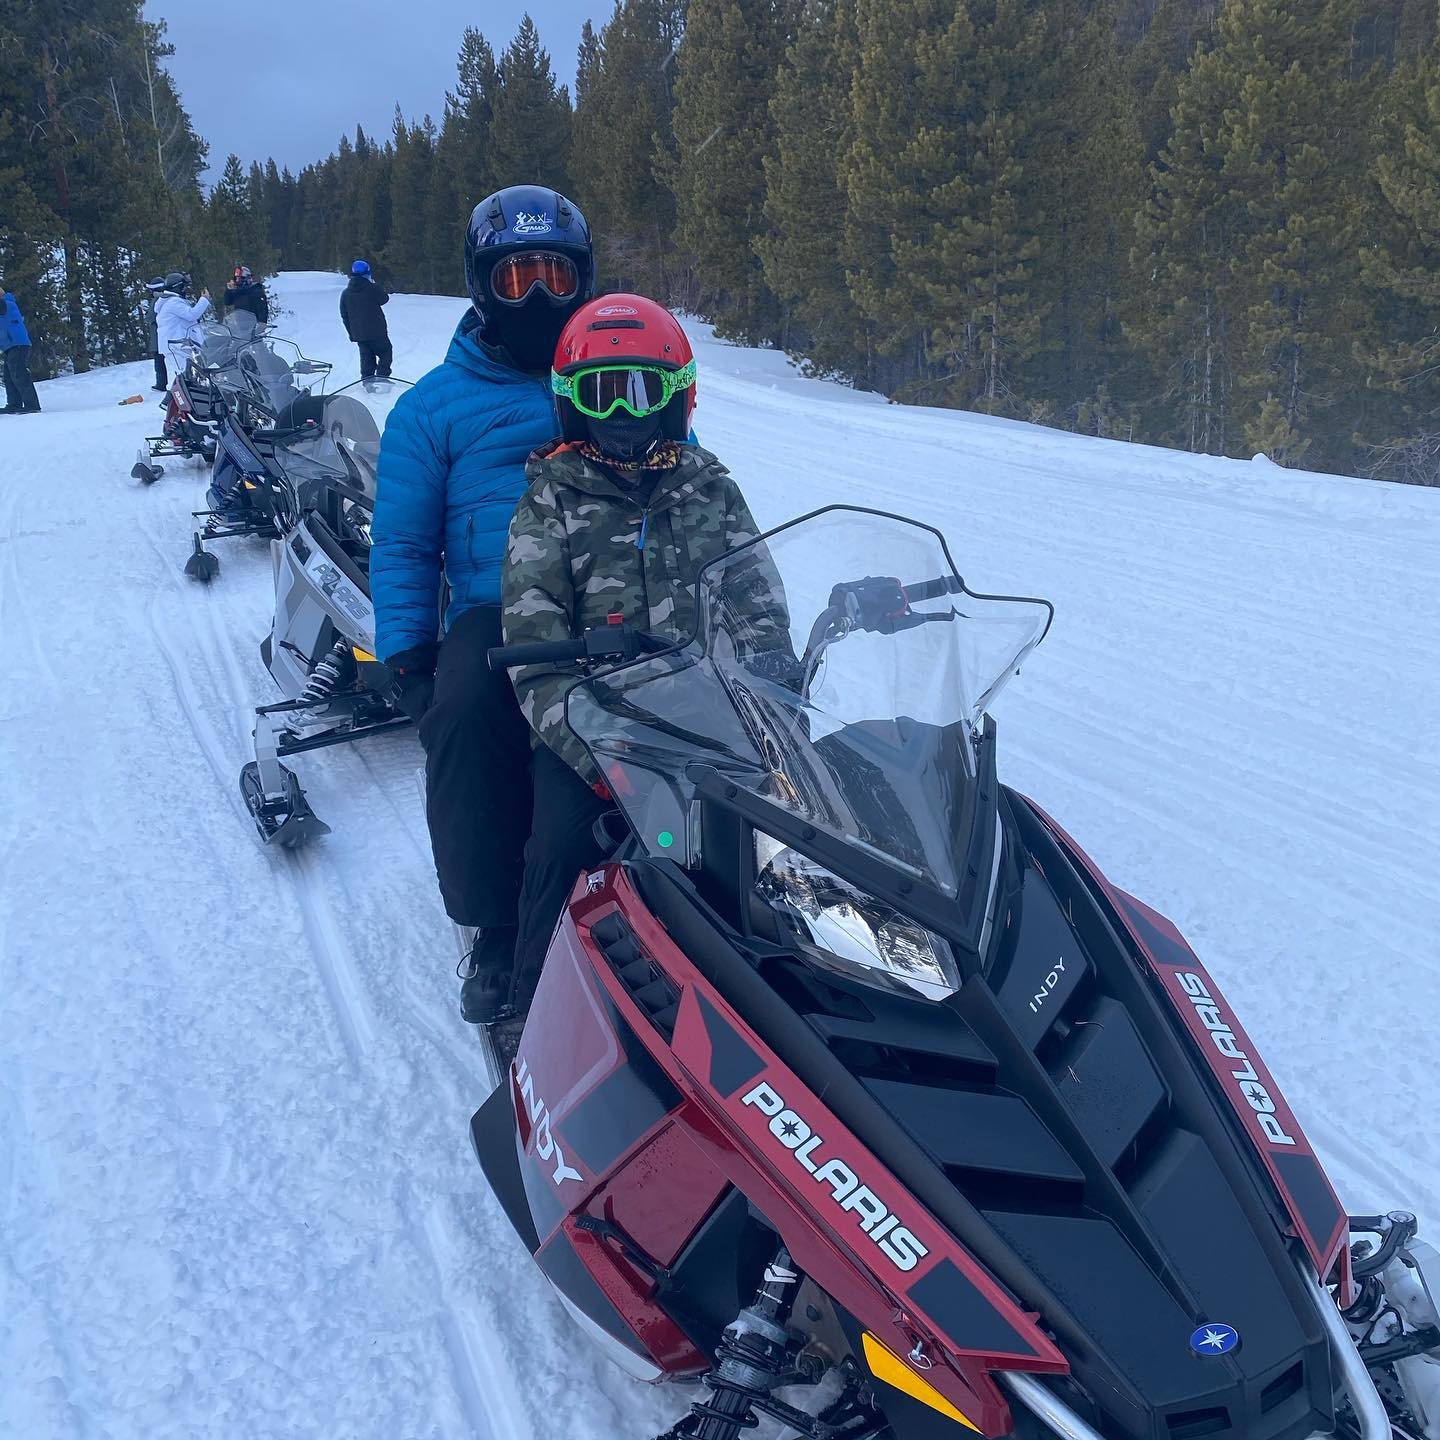 Going on a snowmobile ride today!! Oh what fun it is- over the hills we go - laughing all the way !! #snowmobilerides #winterfun #snowmobilingincolorado #snowmobilefun